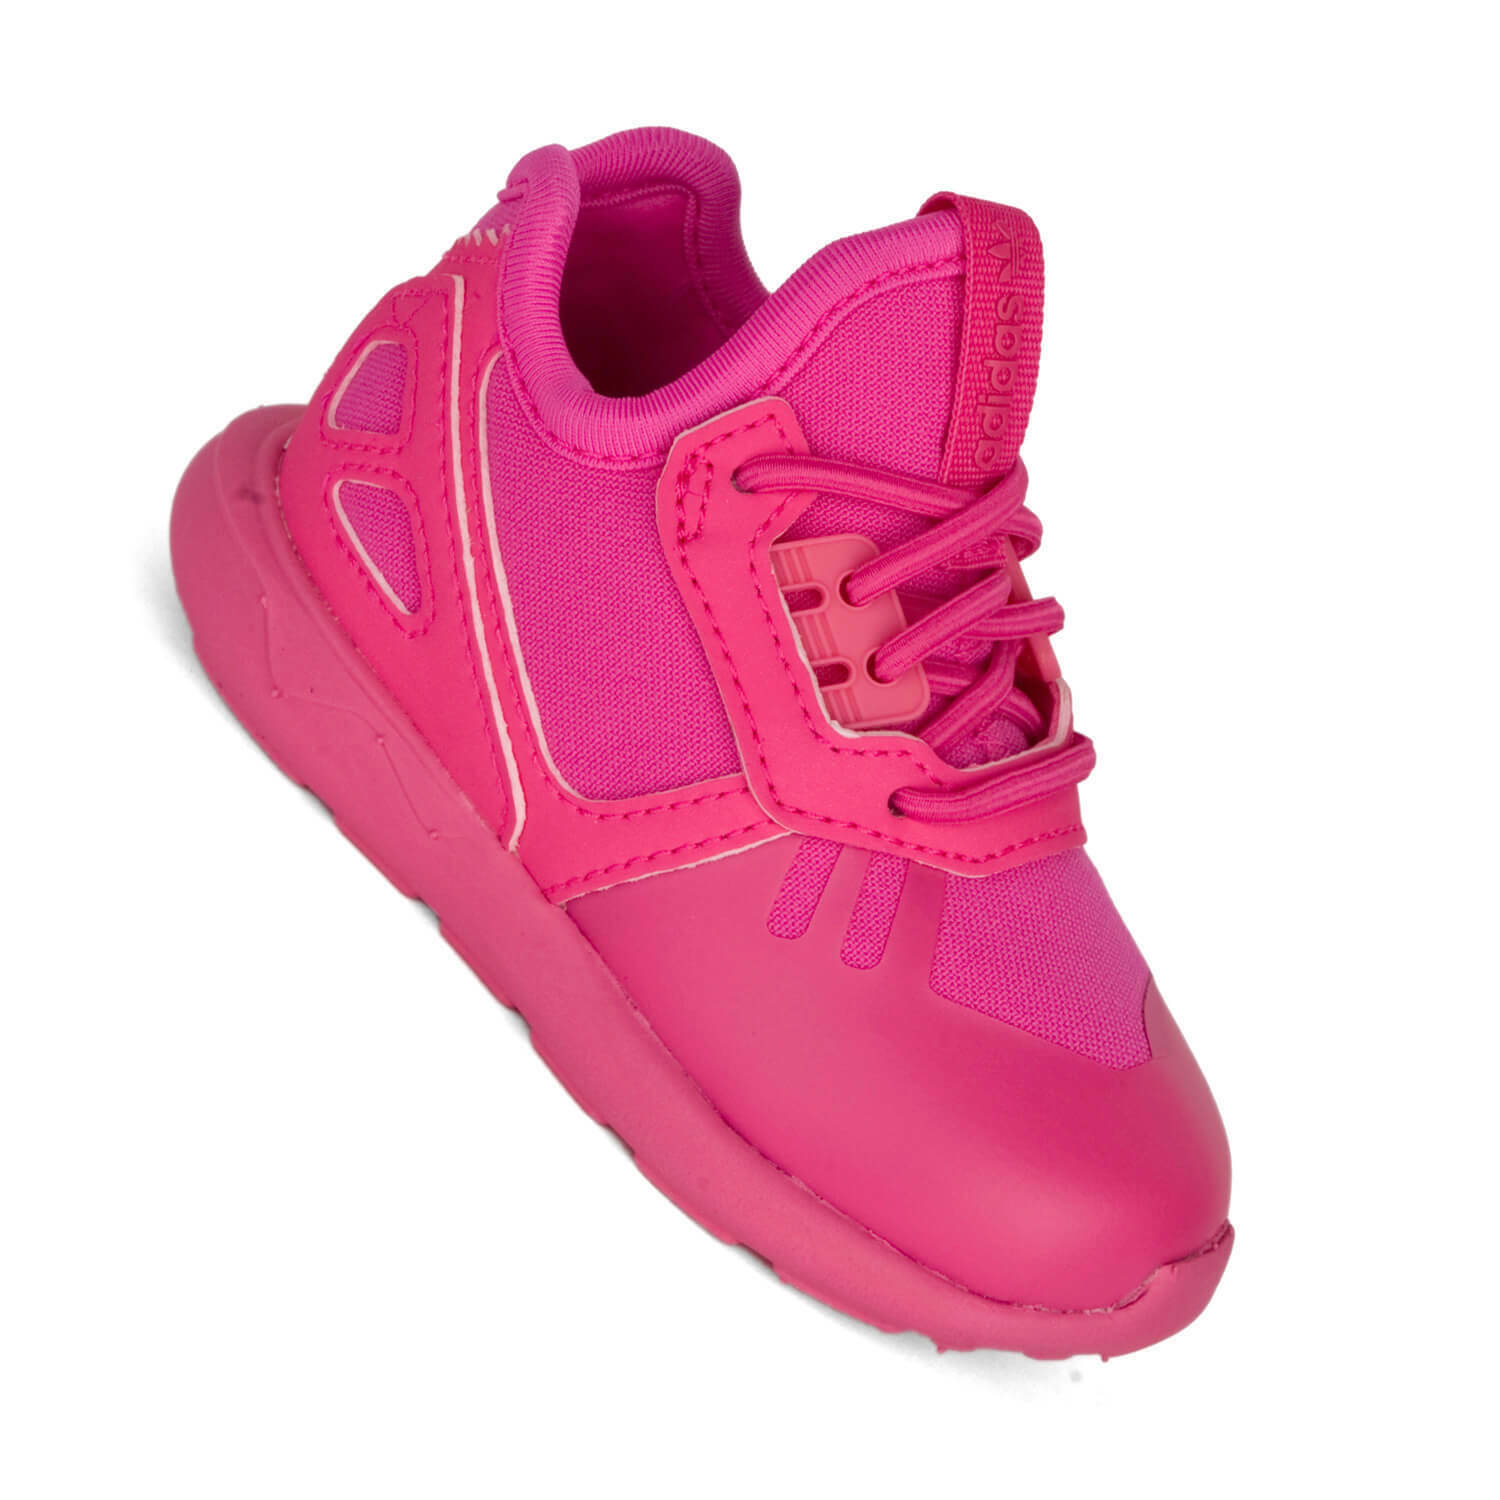 Adidas Tubular Runner Baby Boots Pink - Fashion Sneaker for the Completely Small